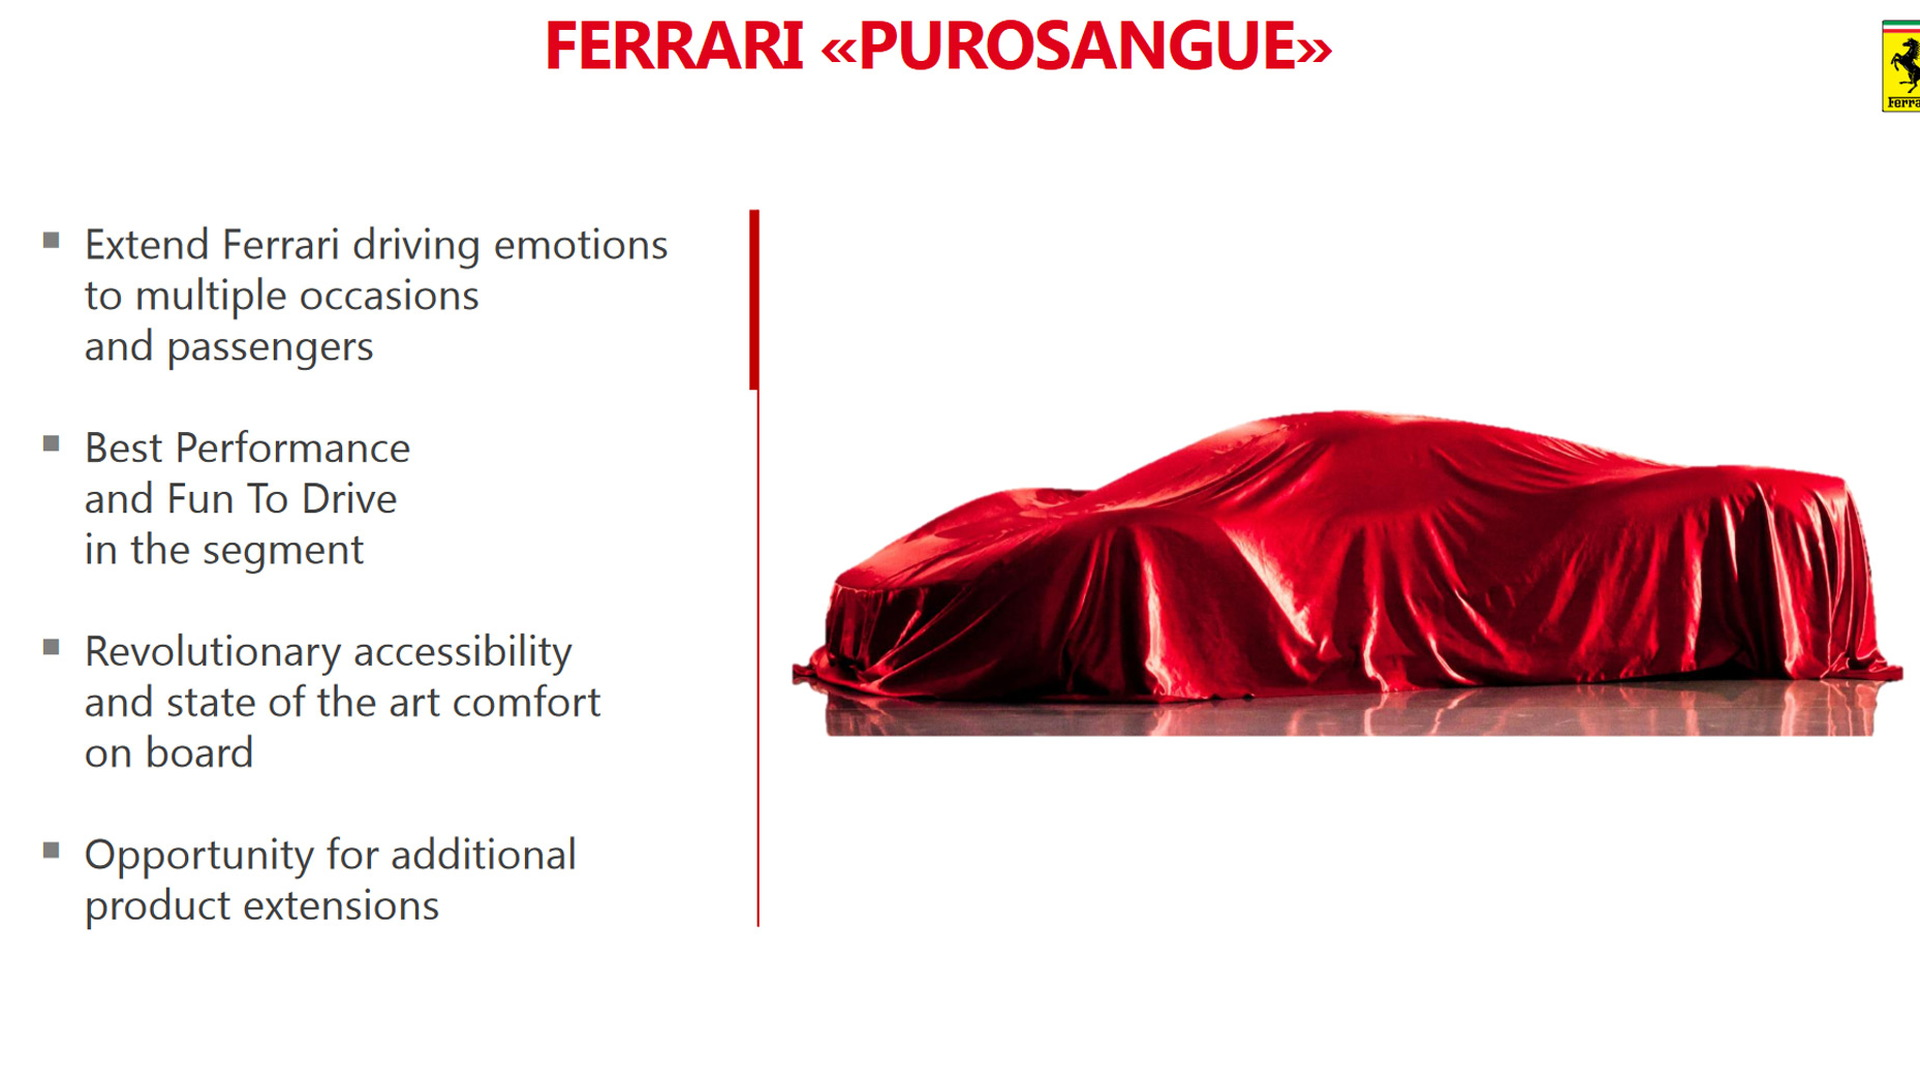 Slide from Ferrari Capital Markets Day presentation made Sept. 18, 2018